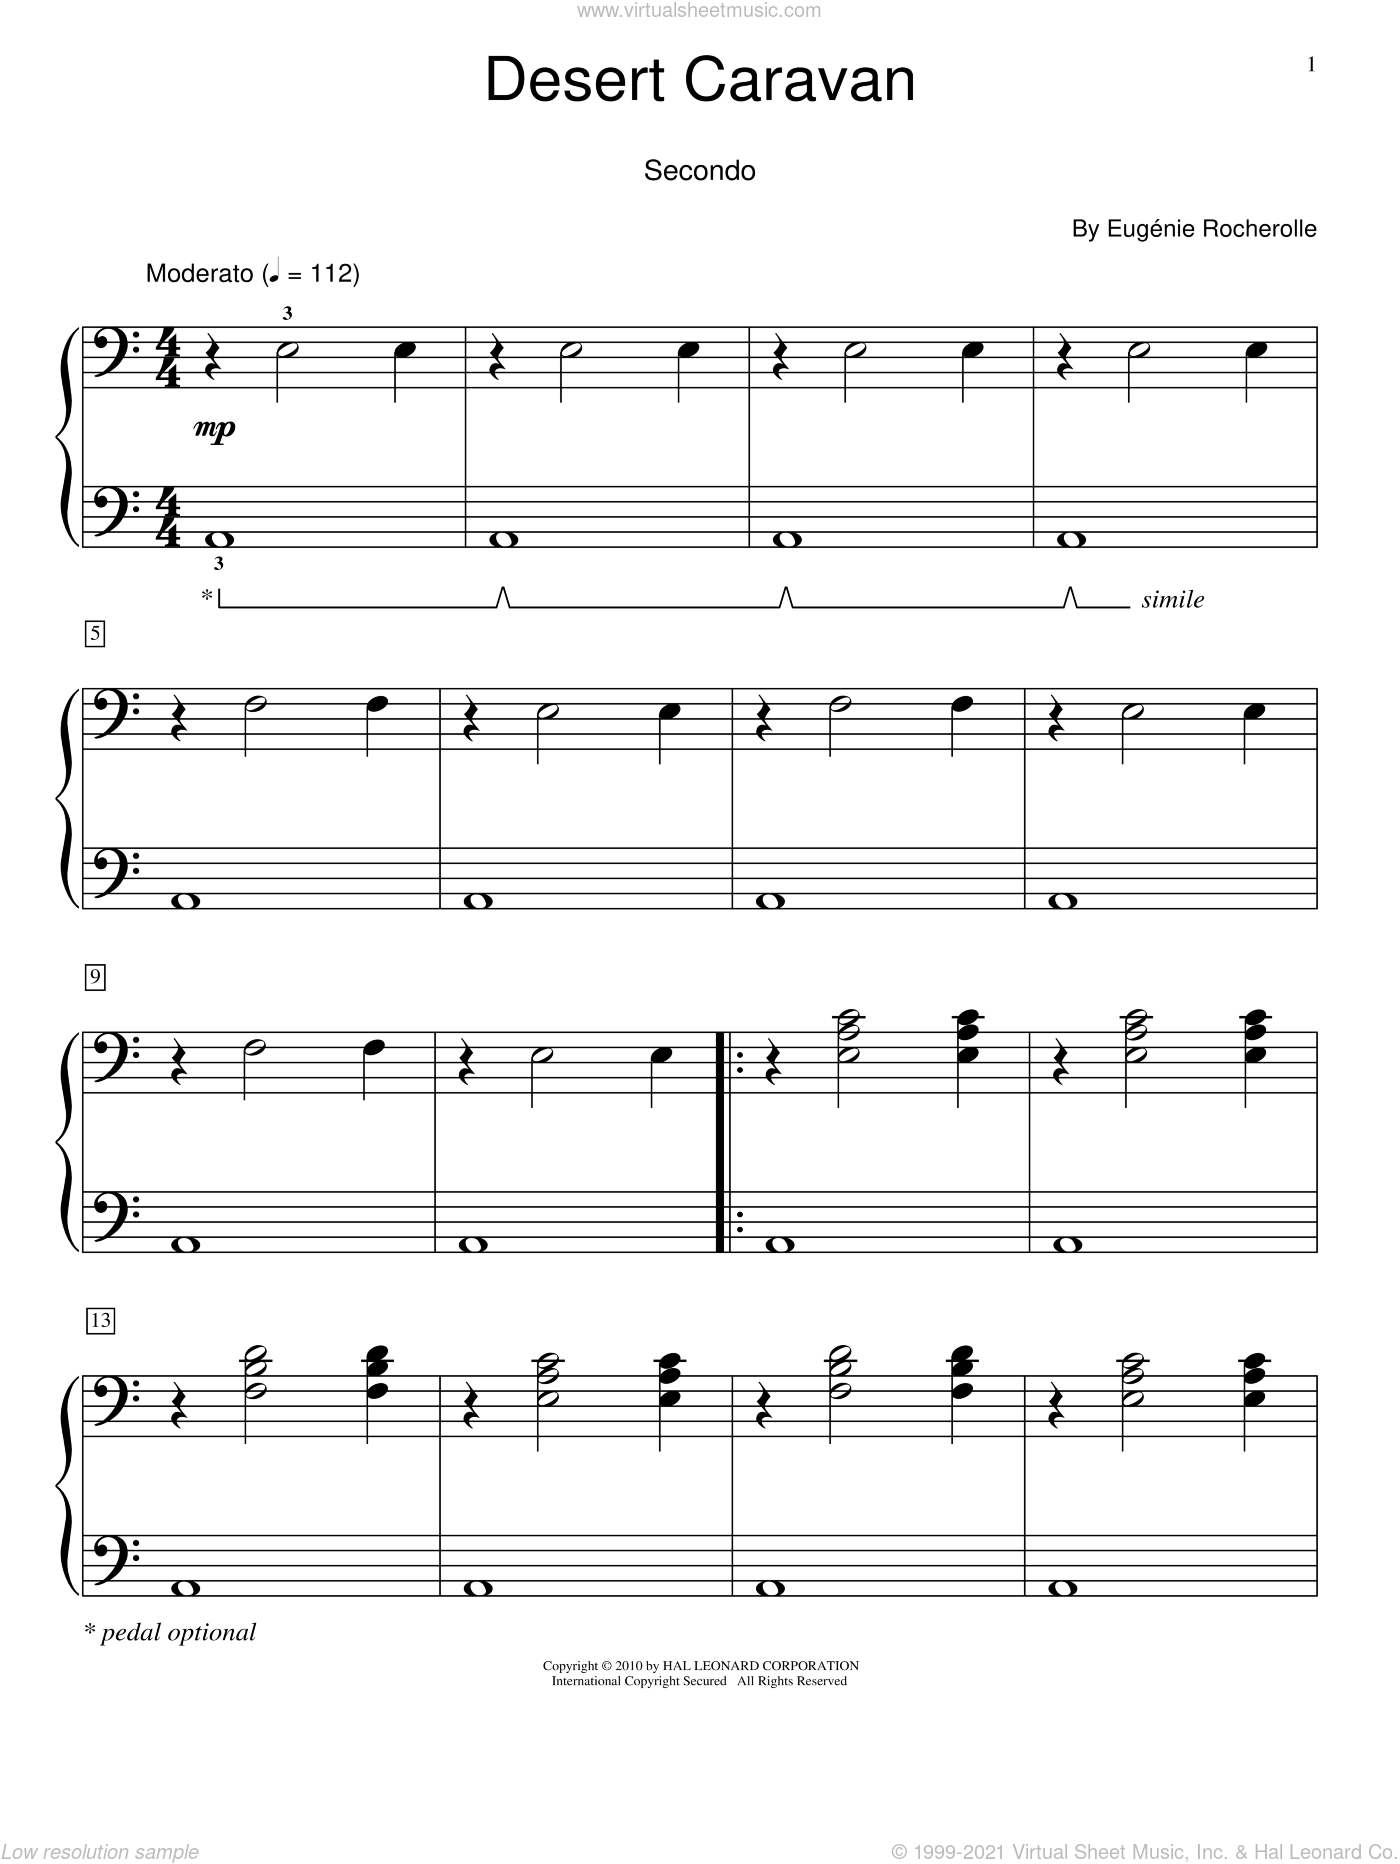 Desert Caravan sheet music for piano four hands (duets) by Eugenie Rocherolle